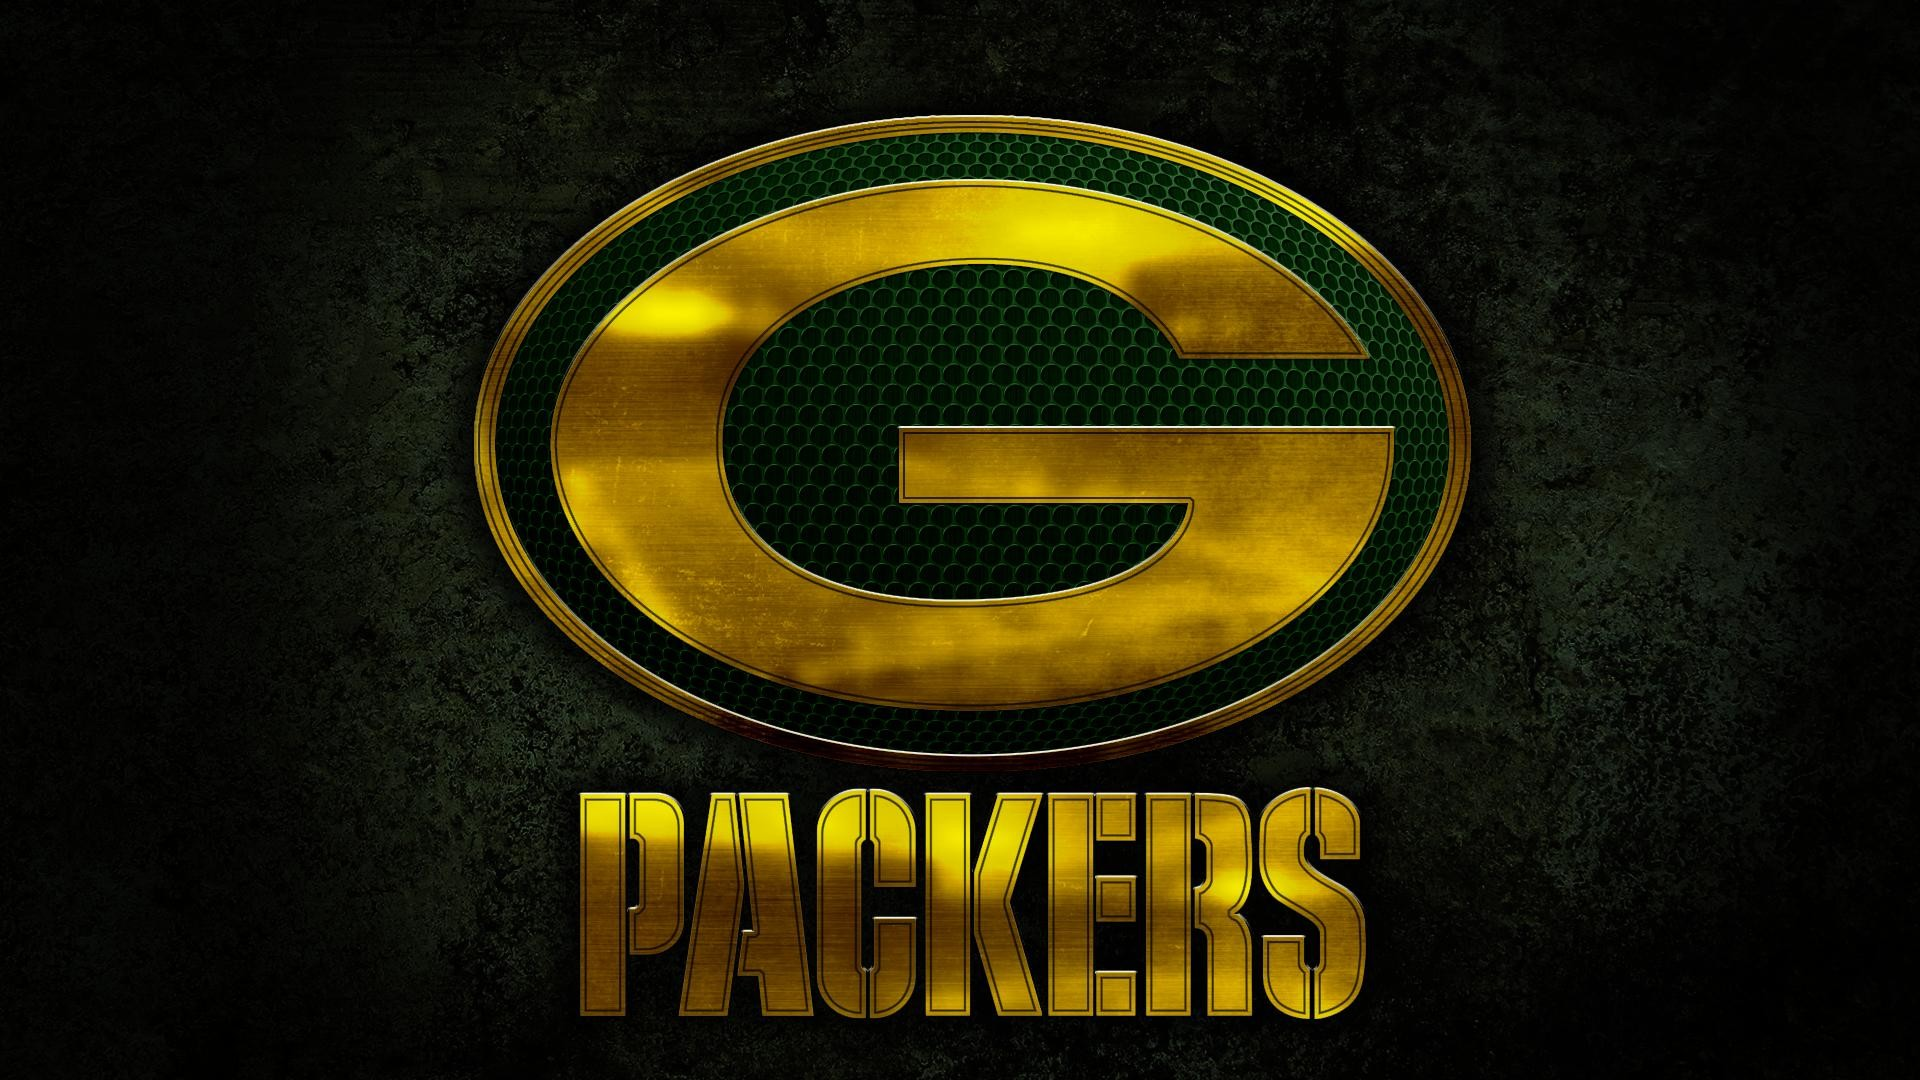 Green Bay Packers Football Wallpapers 72 images 1920x1080